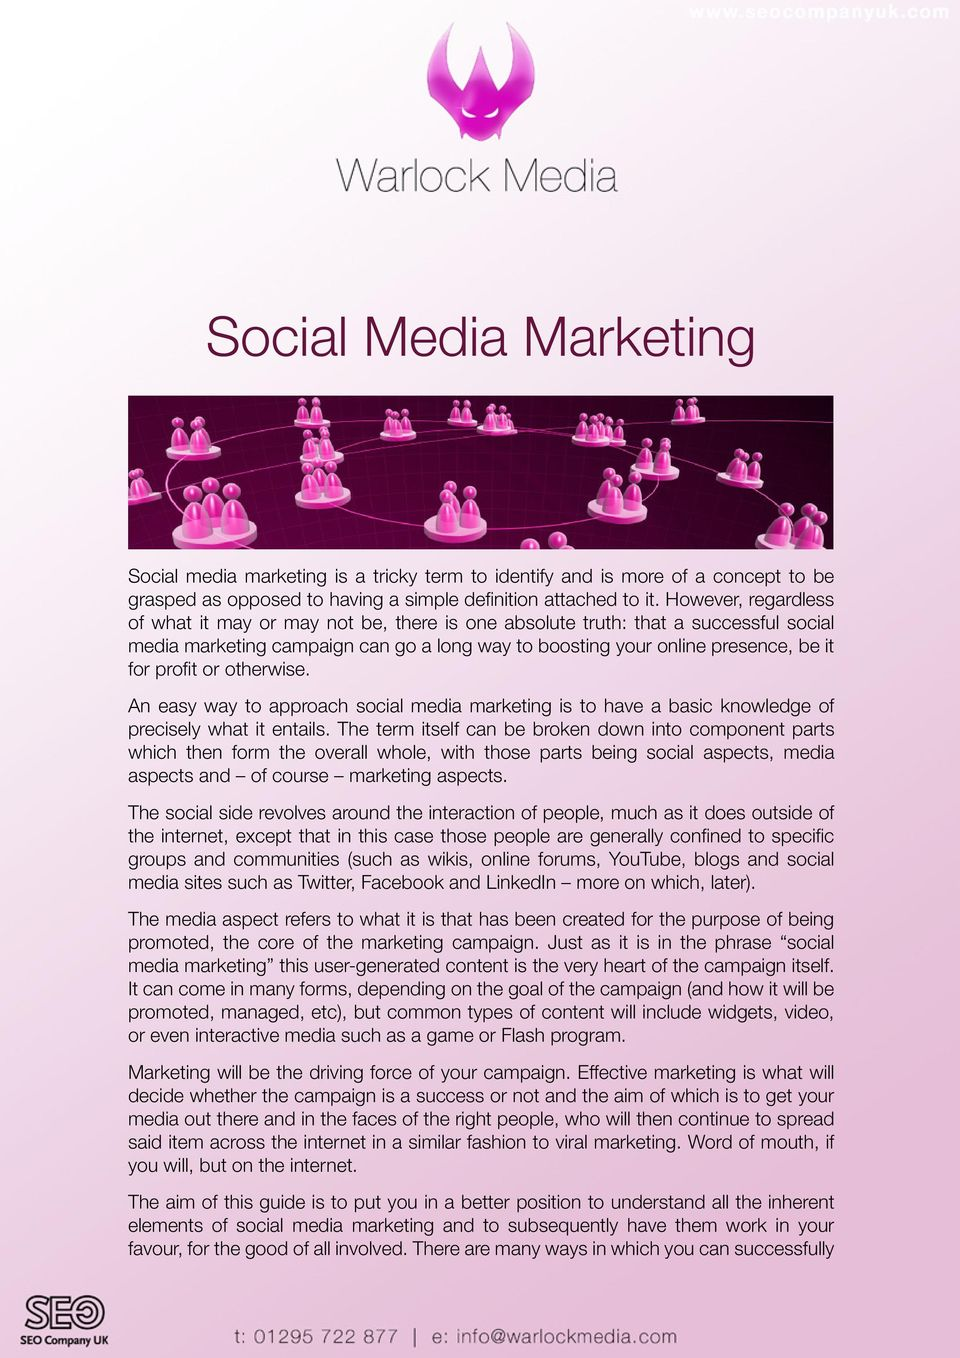 or otherwise. An easy way to approach social media marketing is to have a basic knowledge of precisely what it entails.